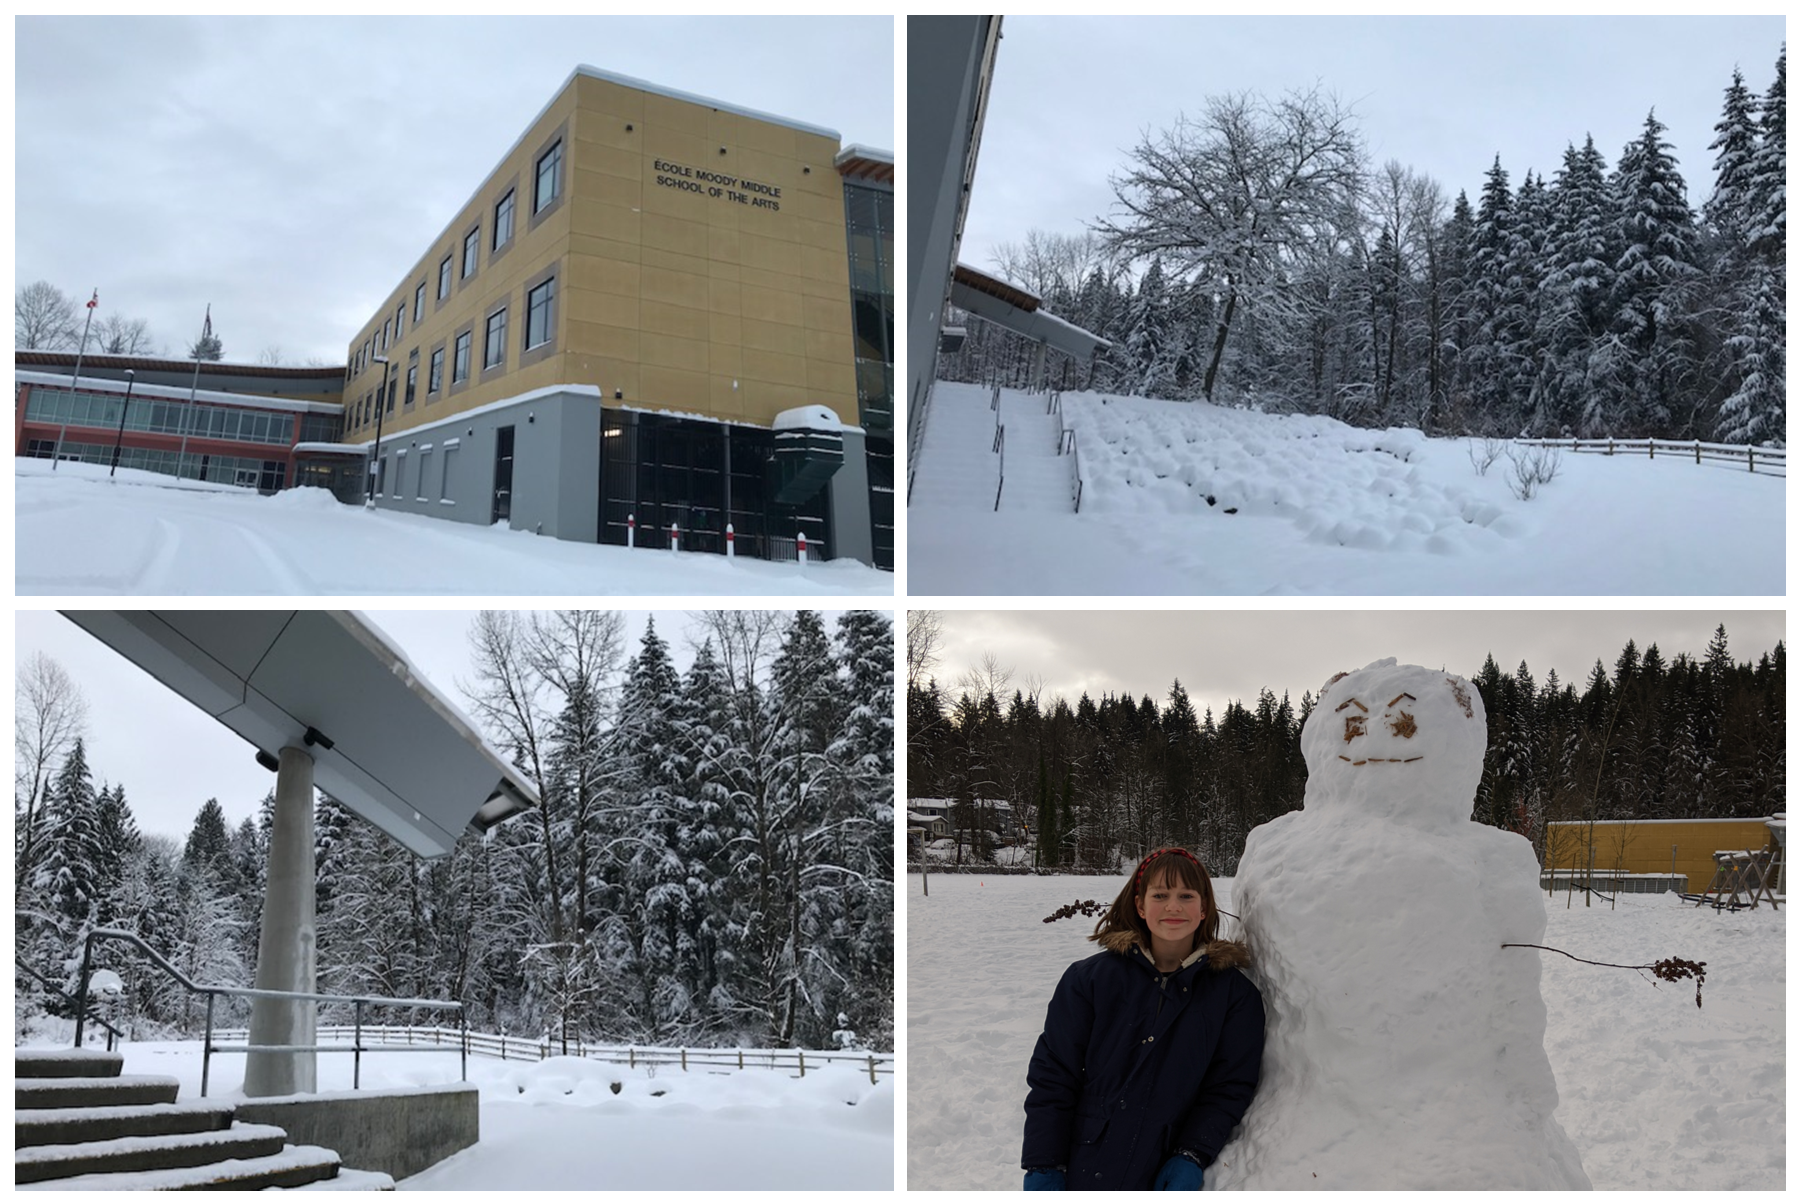 Fun snow days at Moody Middle!